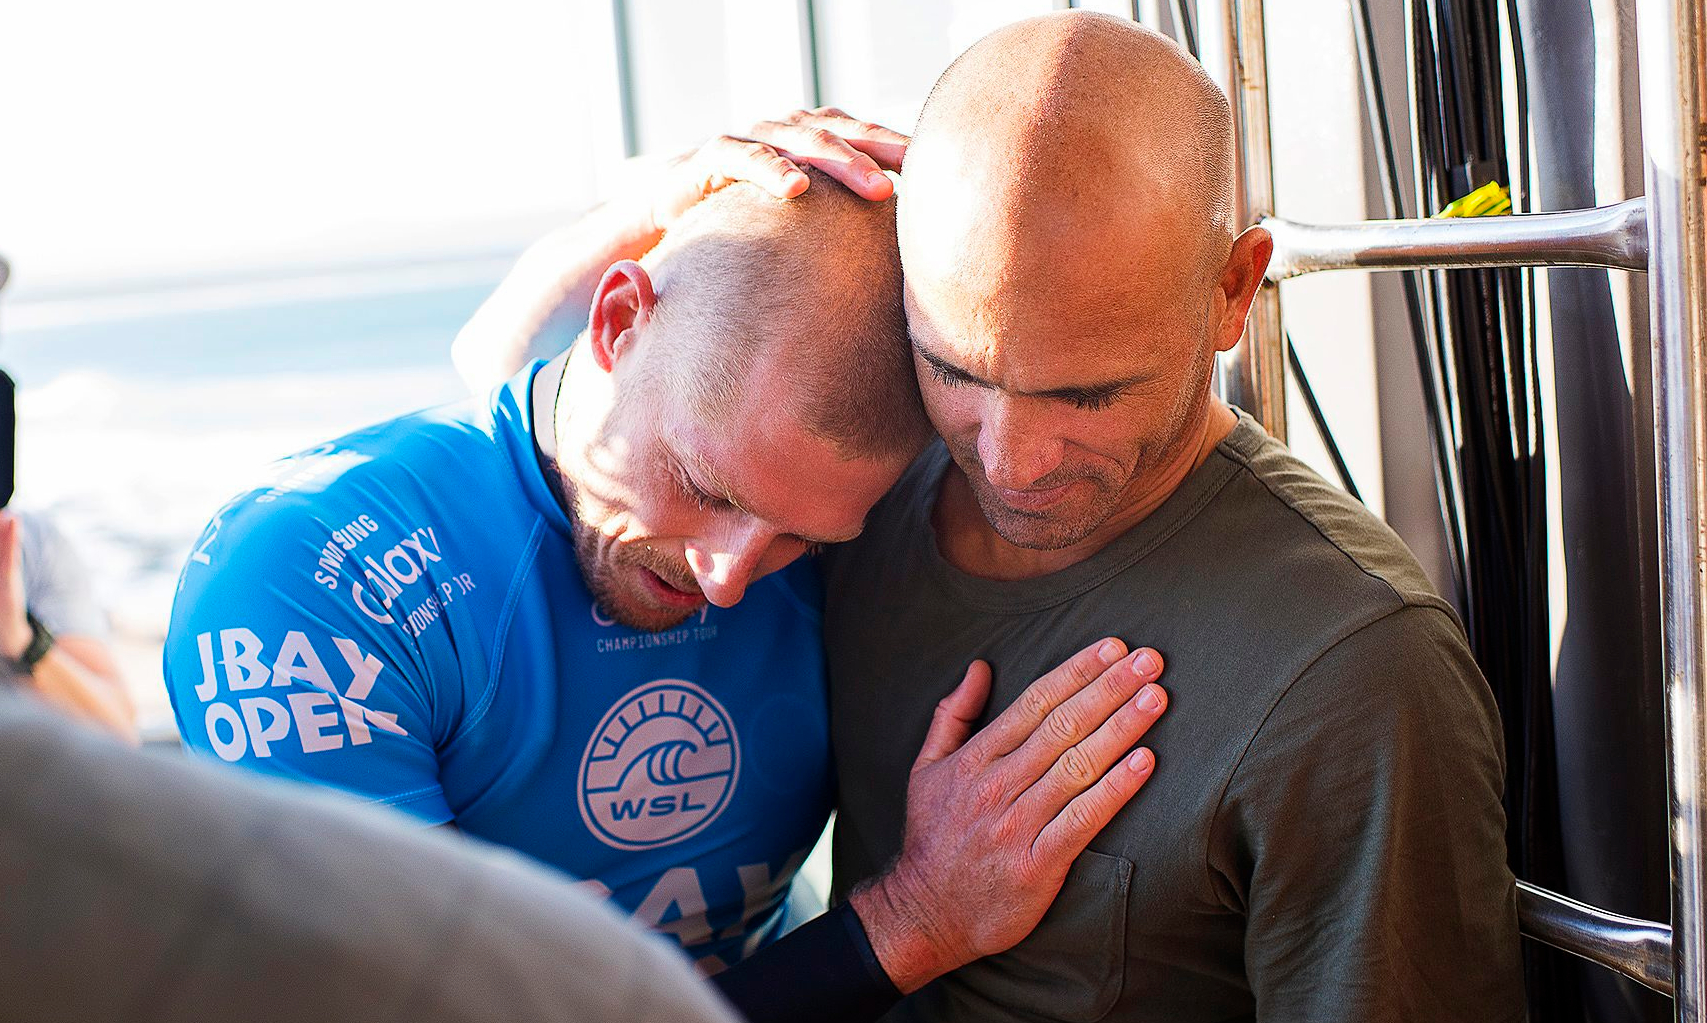 -world champion Empfehlungscode bwin bwin 2013 surfer Bonus-Codes bwin Mick Fanning, whose survival after a shark ...